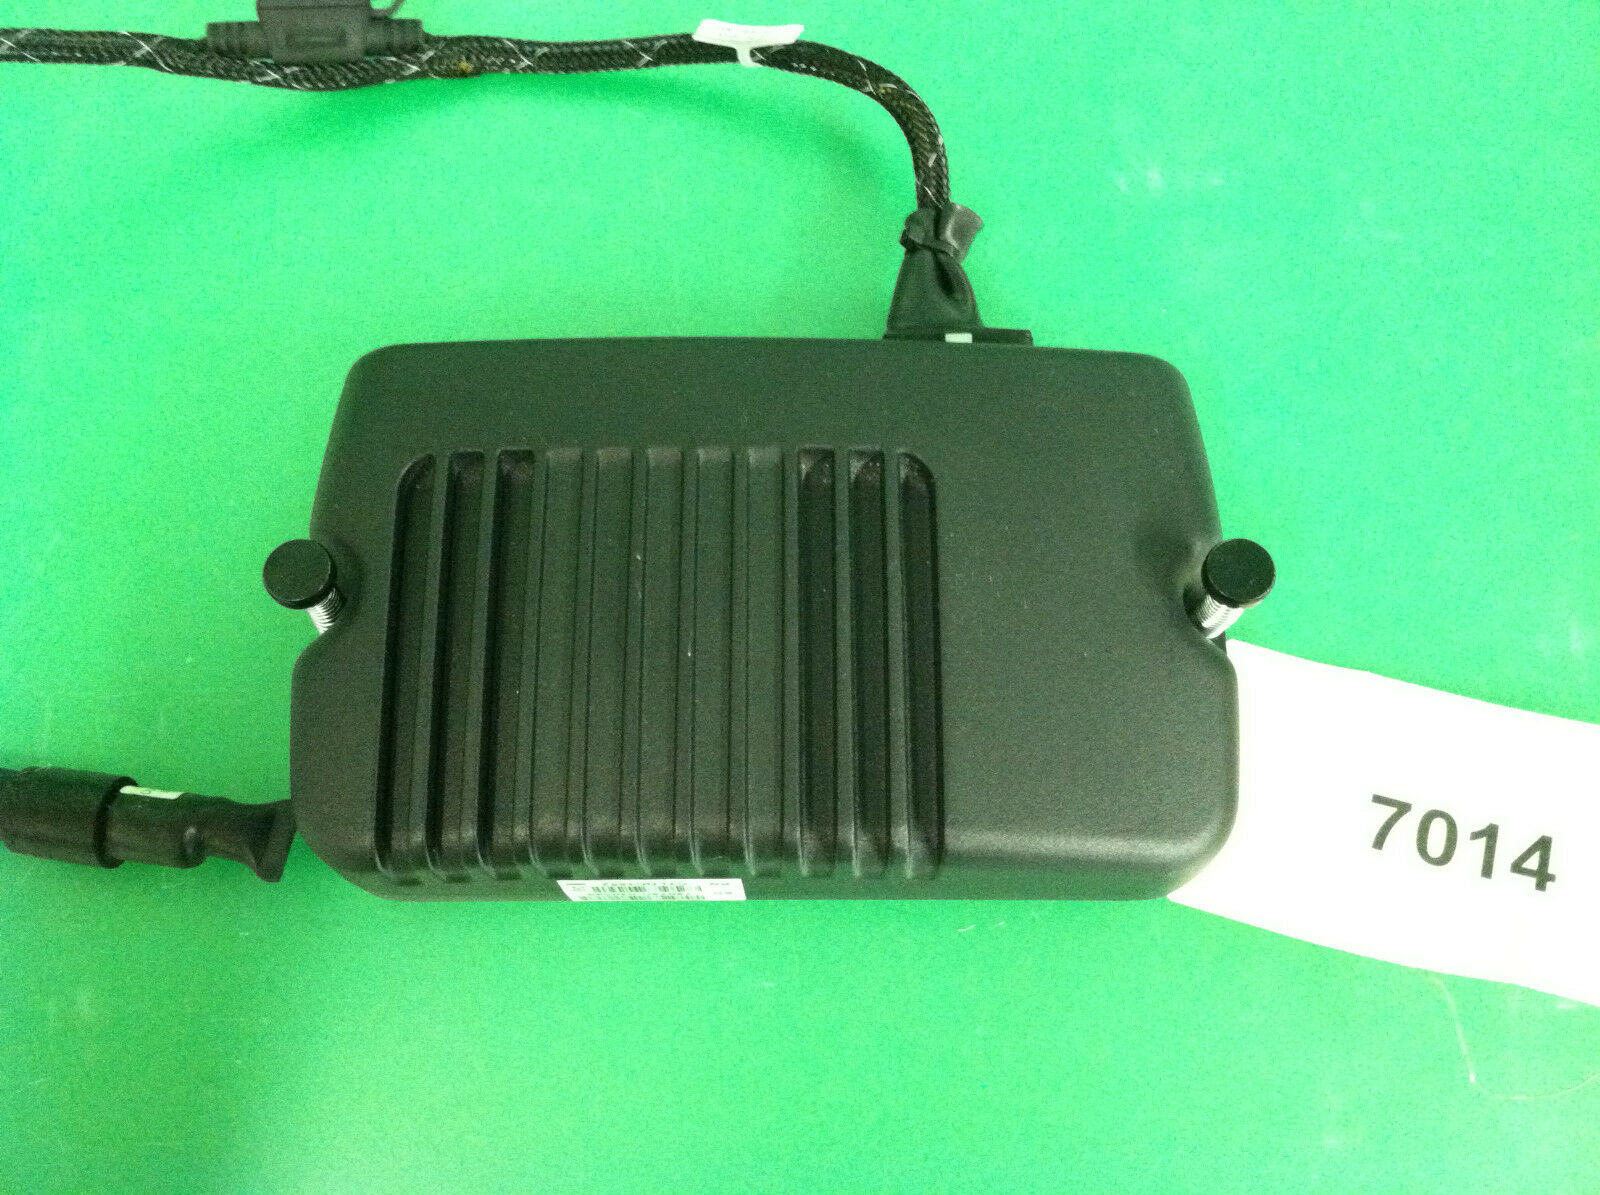 Quantum Control Module Model 1750-2009  CTLDC1552 for Power Wheelchair  #7014